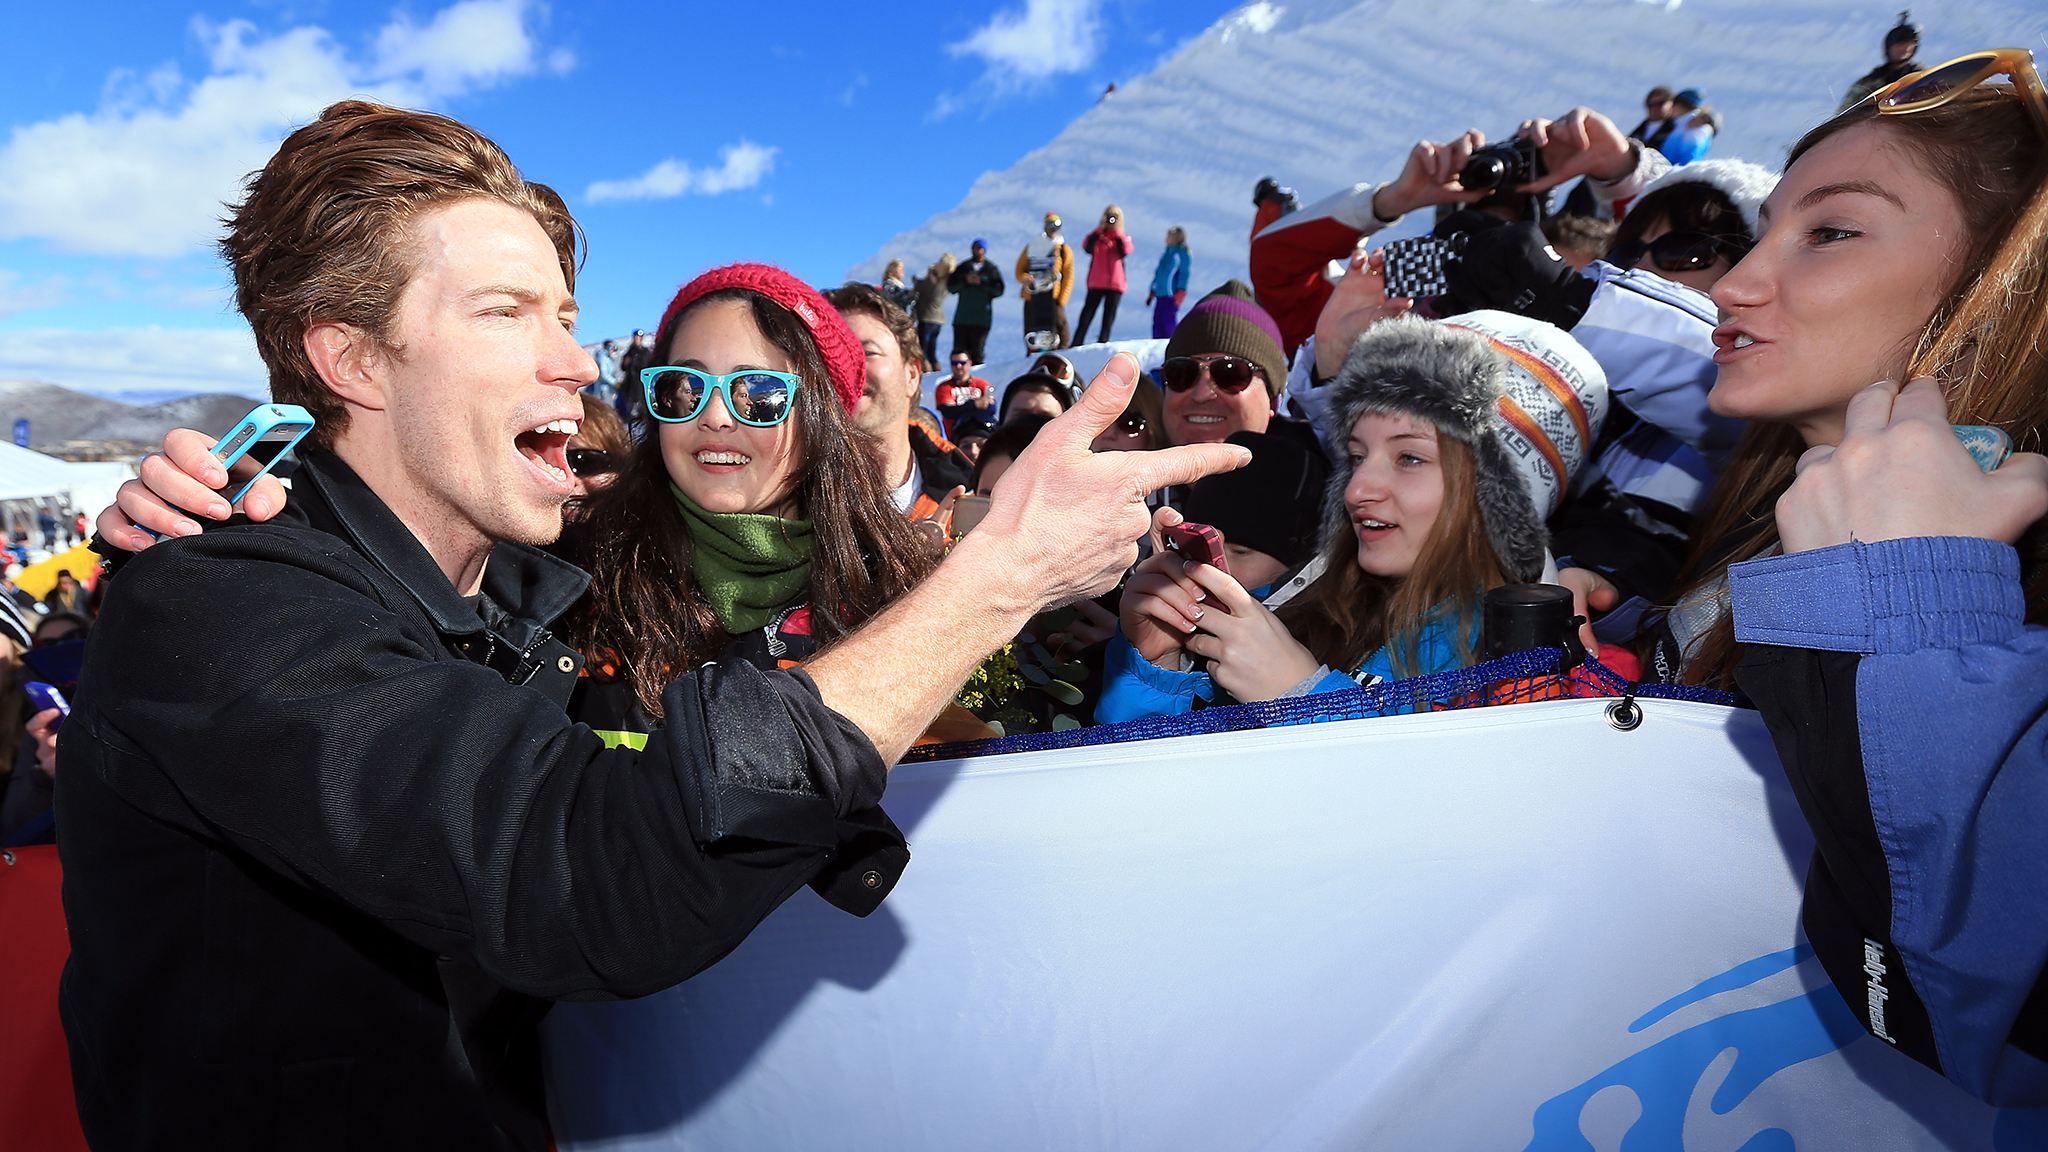 Shaun White, seen here at the U.S. Grand Prix in February, will release a debut album with his new band, Bad Things, later this year.